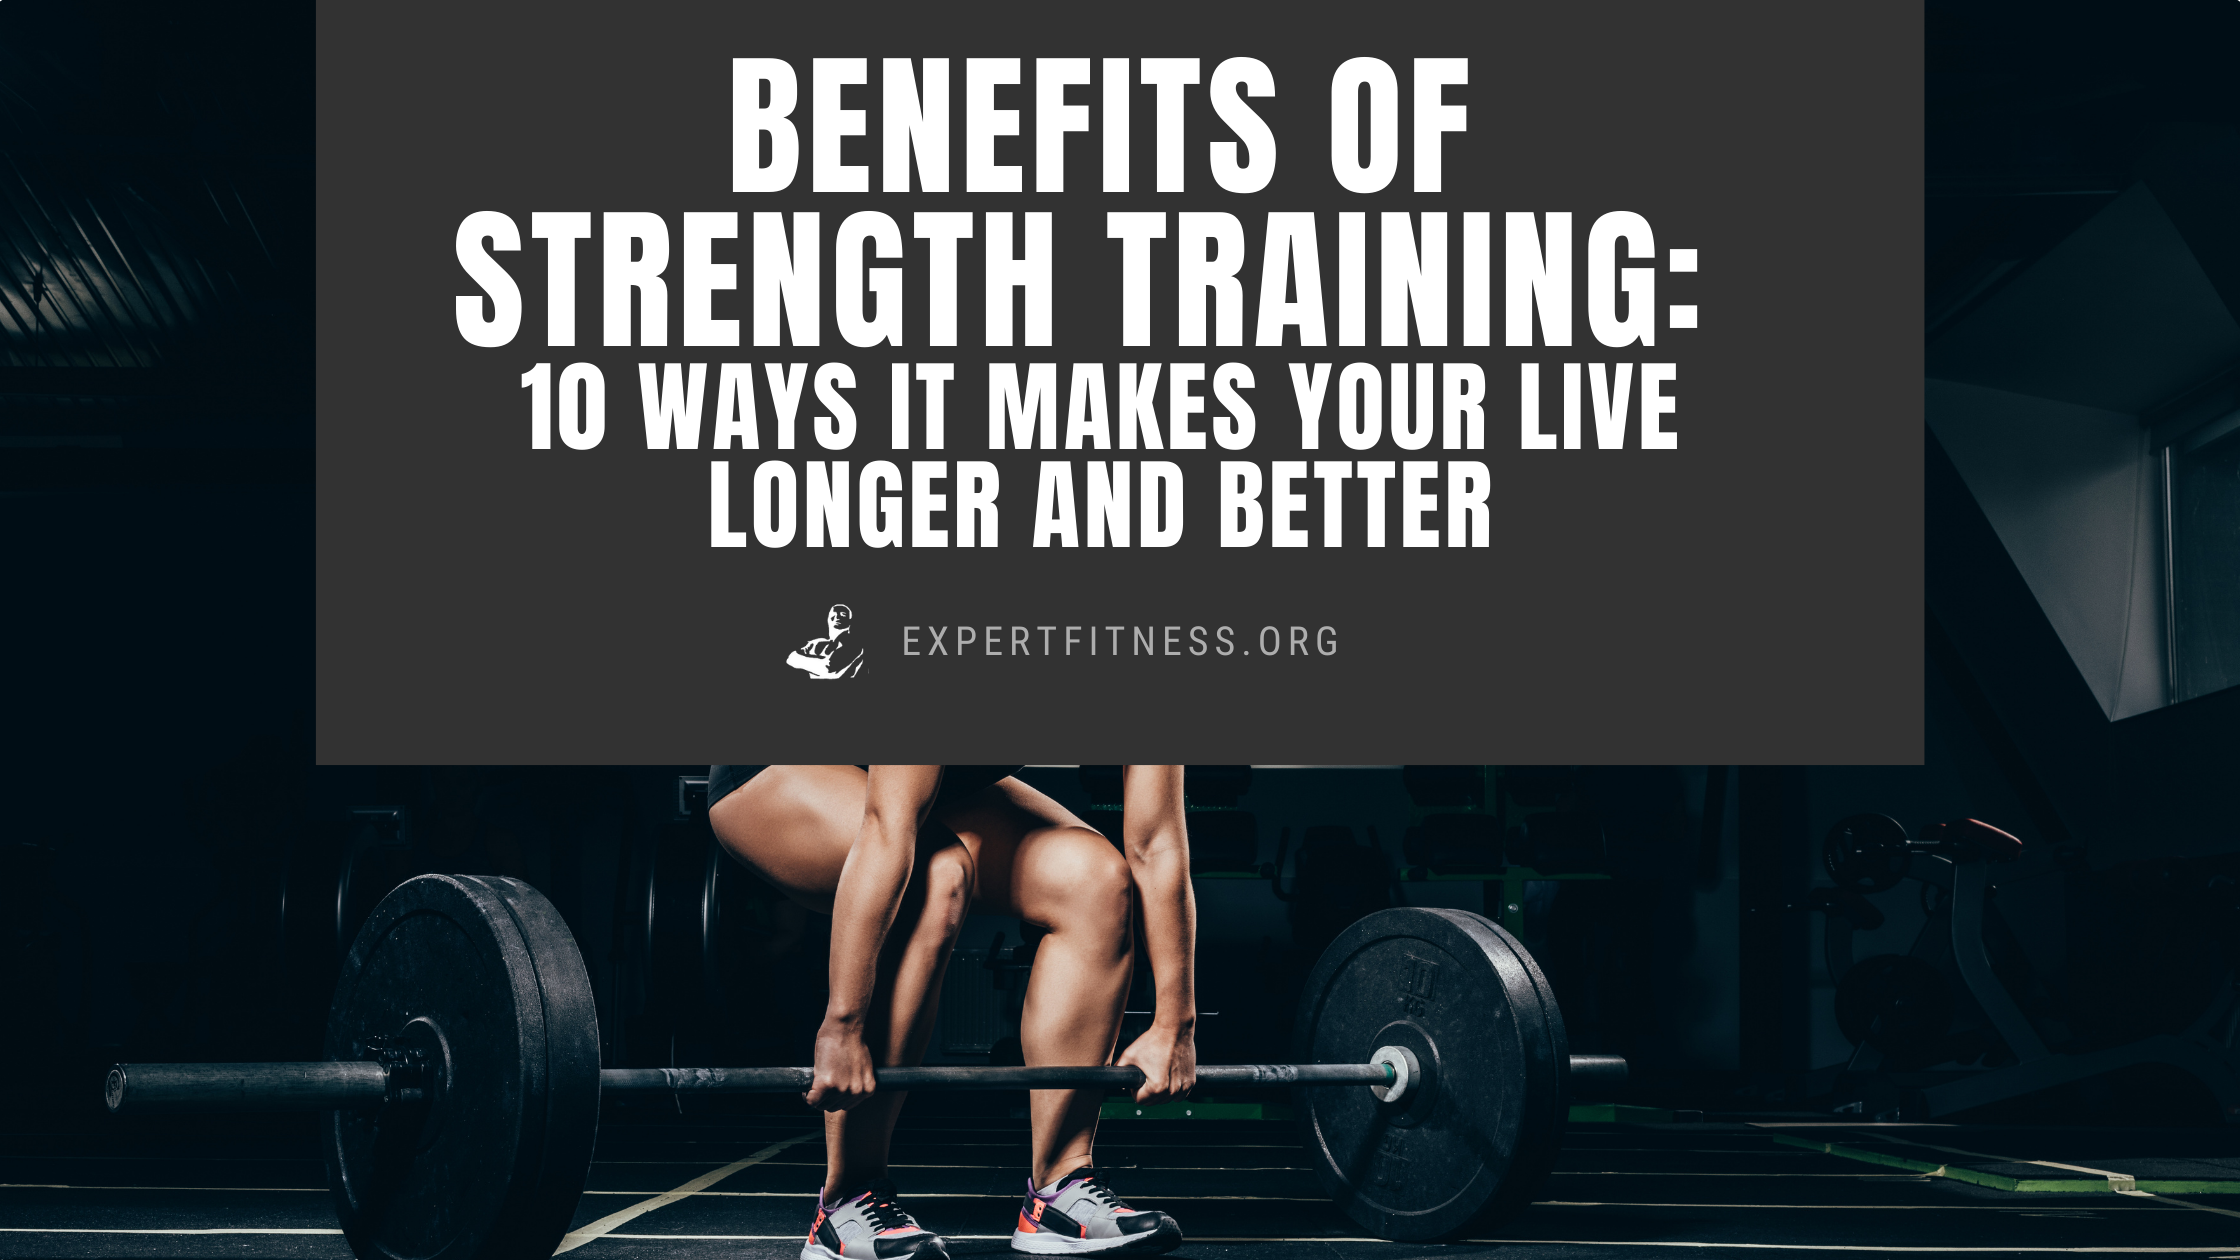 Benefits of Strength Training: 10 Ways it Makes Your Live Longer and Better